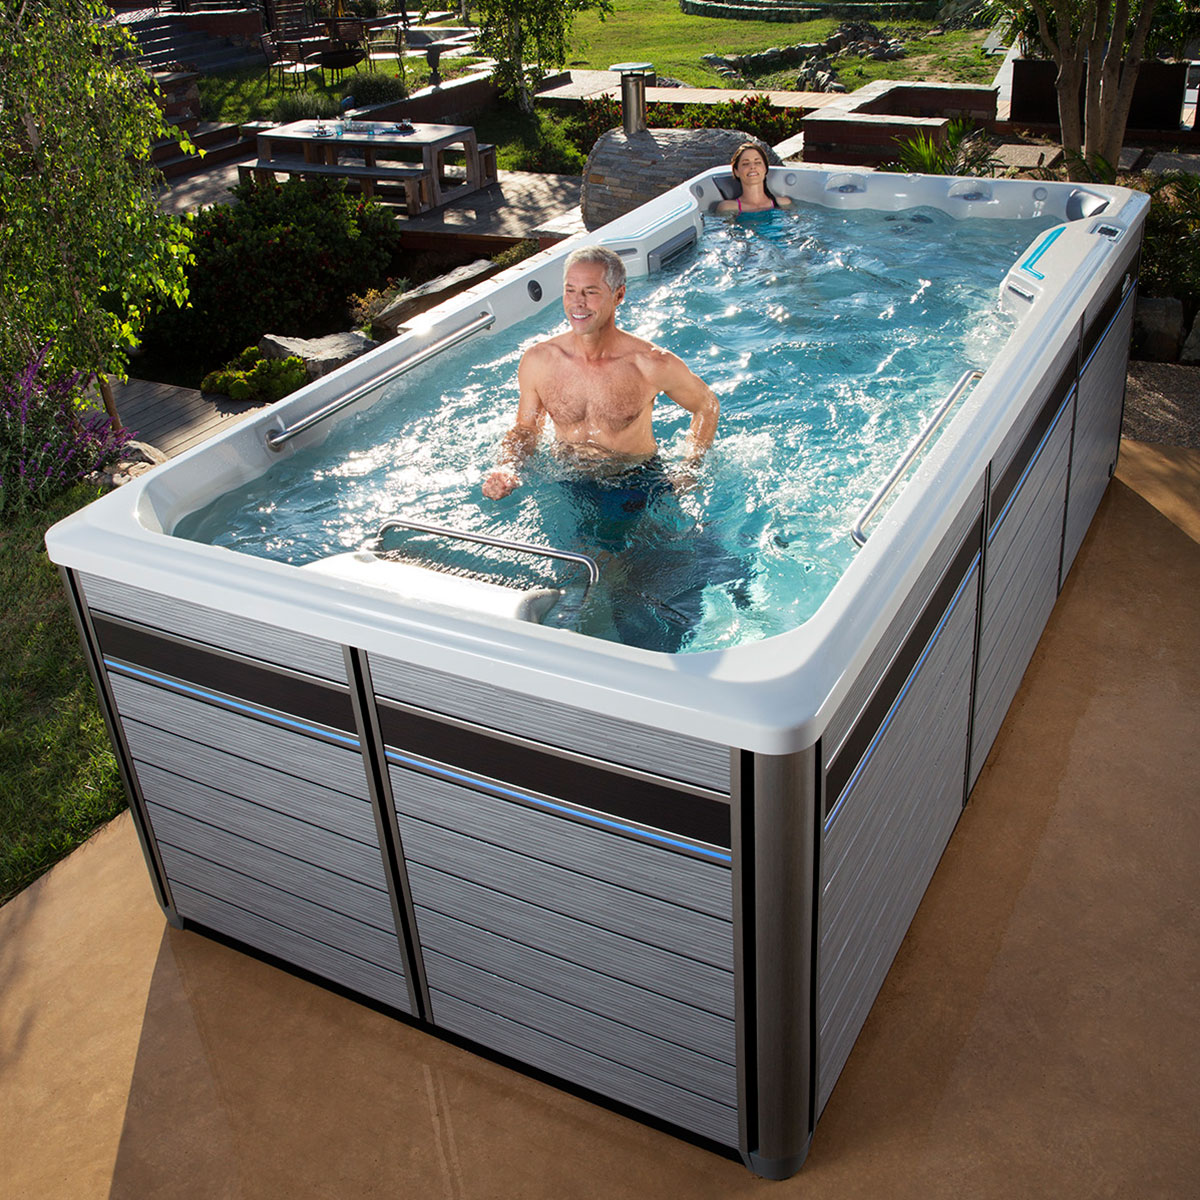 E500 Endless PoolsR Fitness Systems